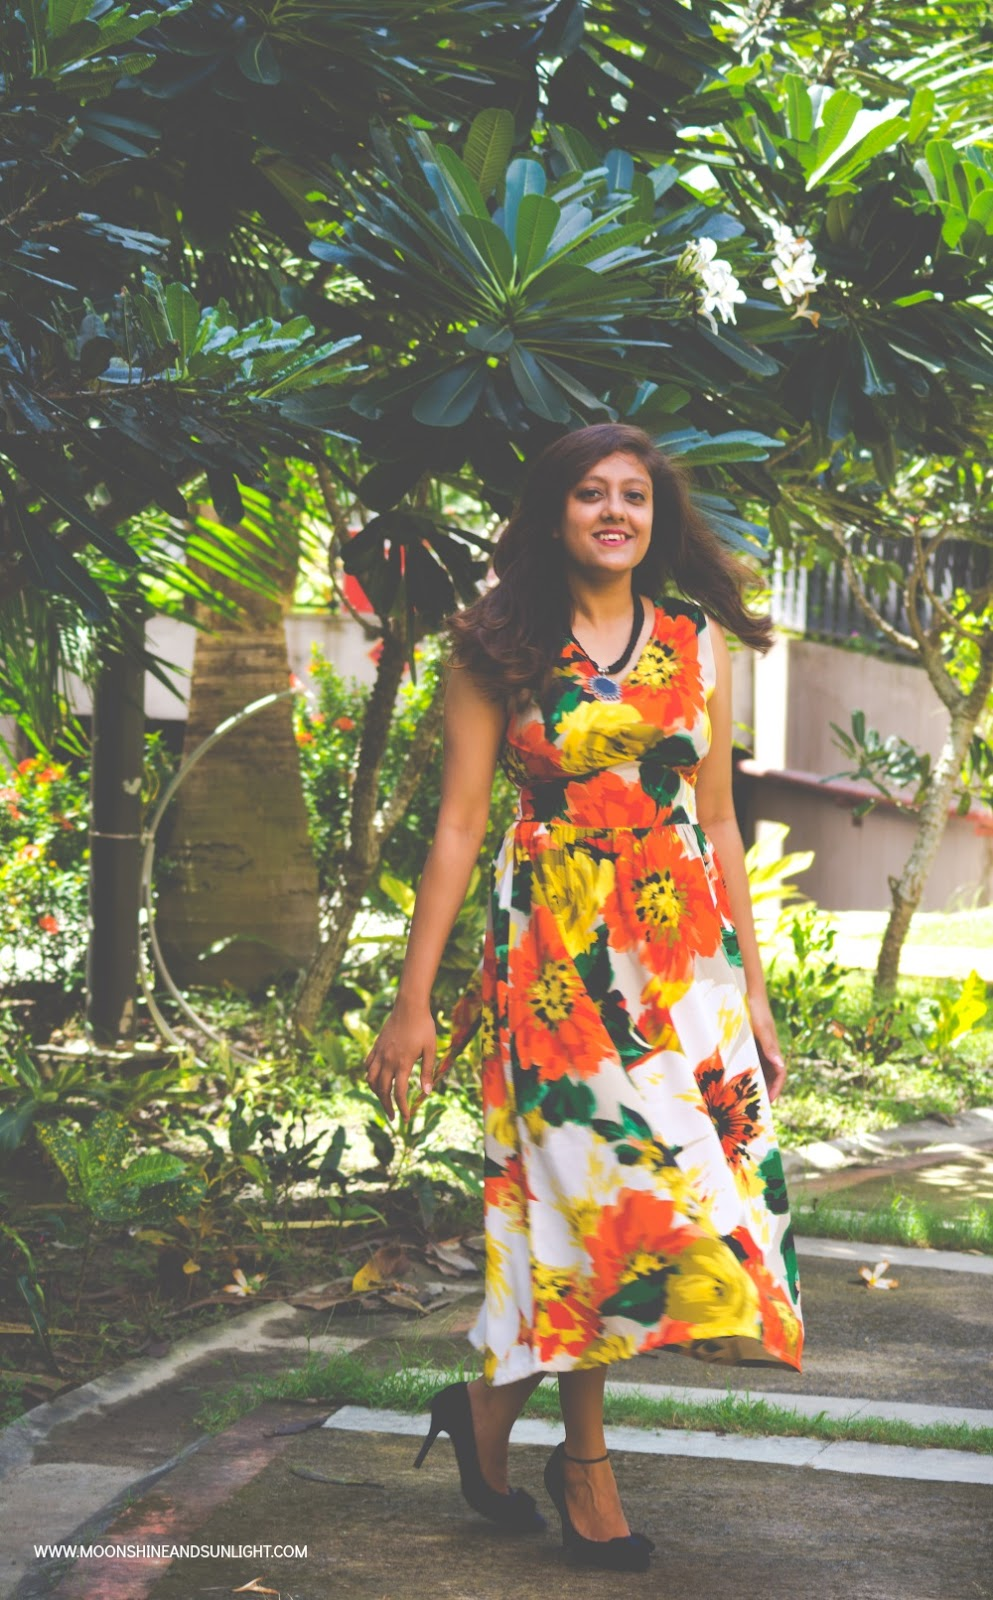 Gravitating, OOTD Post, Fashion blog by Priyanjana Roy, Moonshine and sunlight, ridress, Bangalore